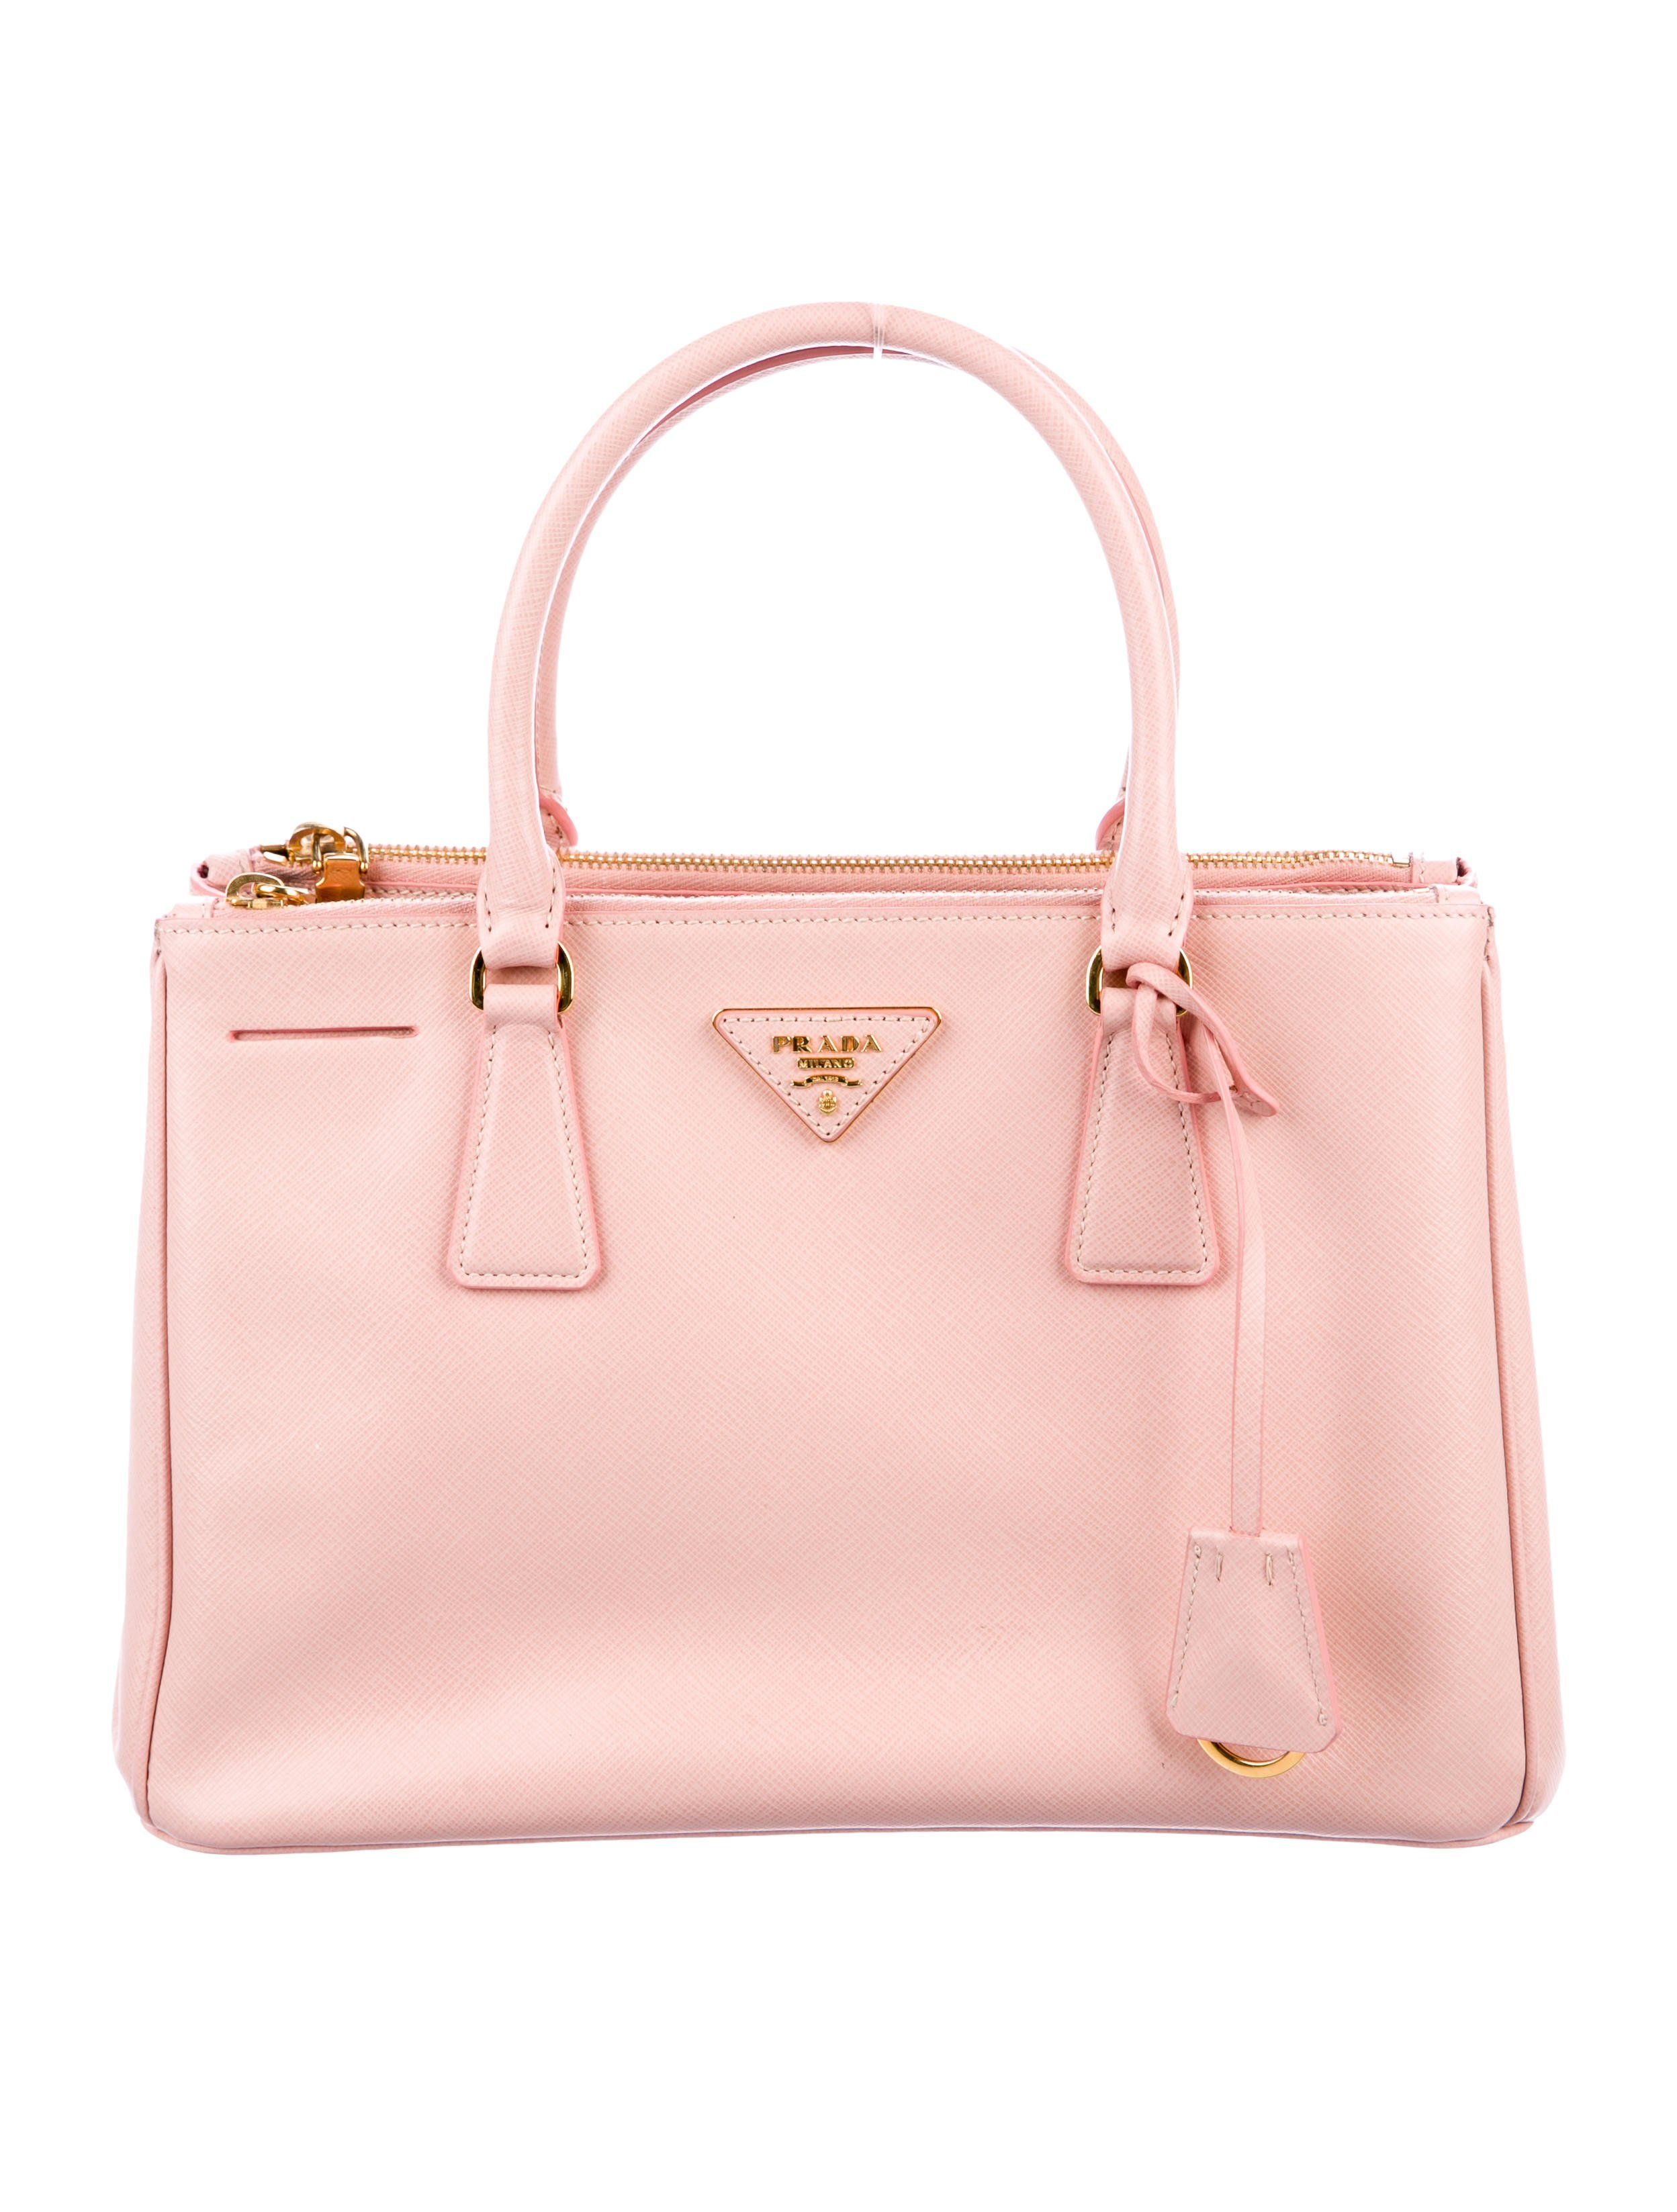 d564fb7d2142c8 Pink Saffiano Lux leather Prada Small Galleria Double-Zip tote with  gold-tone hardware, adjustable flat shoulder strap, dual rolled handles,  triangle logo ...